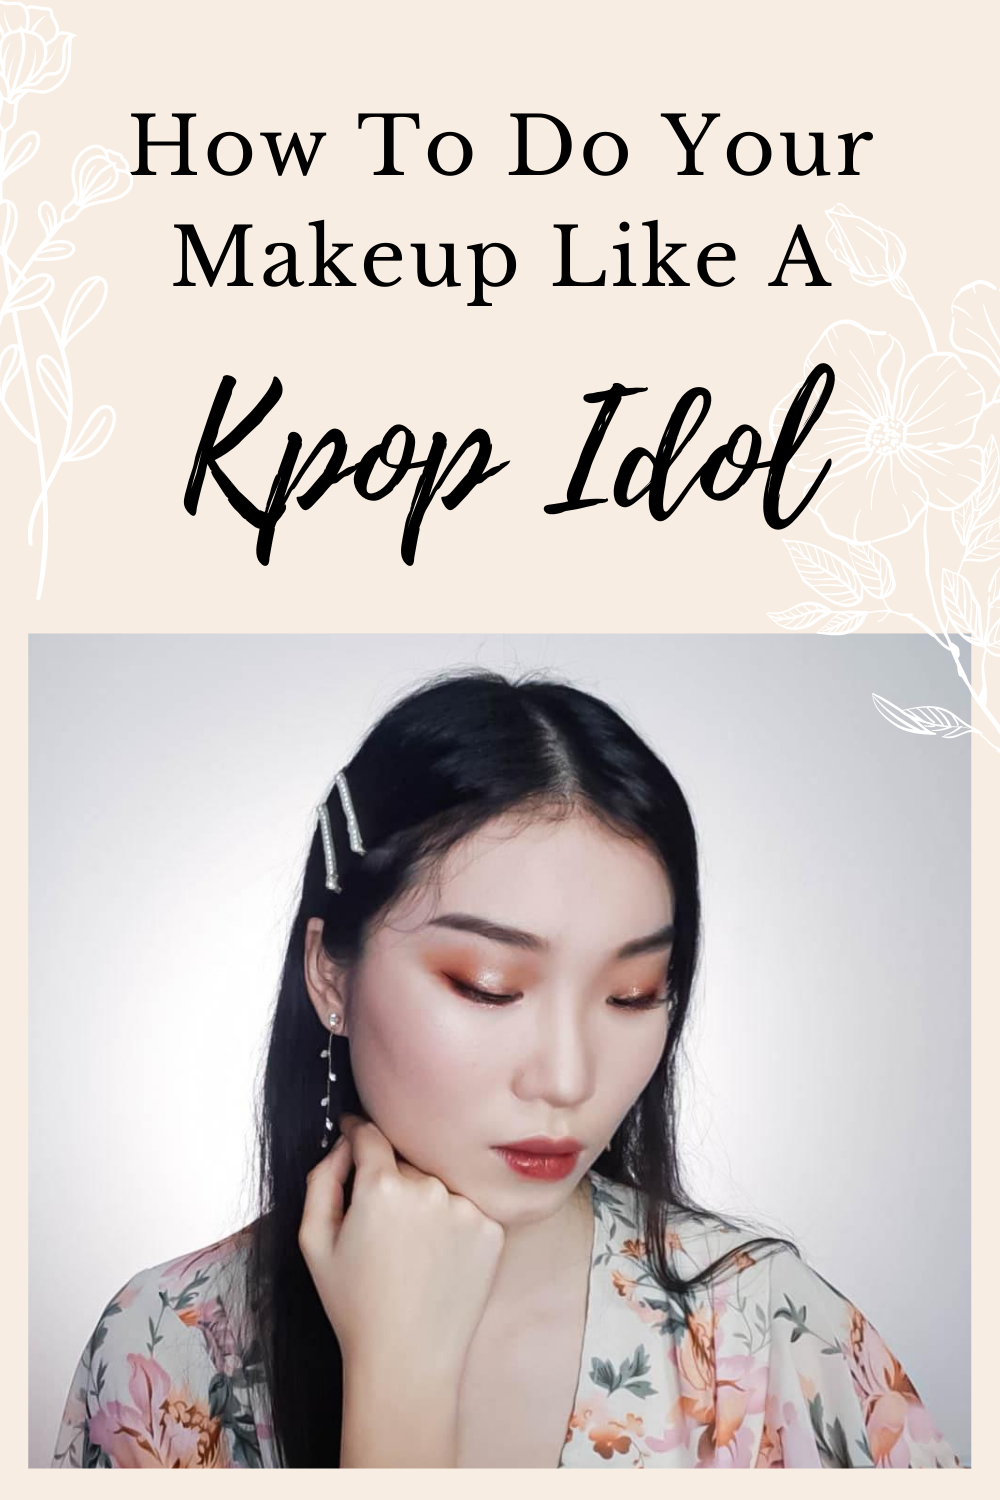 Kpop Idol Makeup Pop Makeup Aesthetic Makeup Makeup